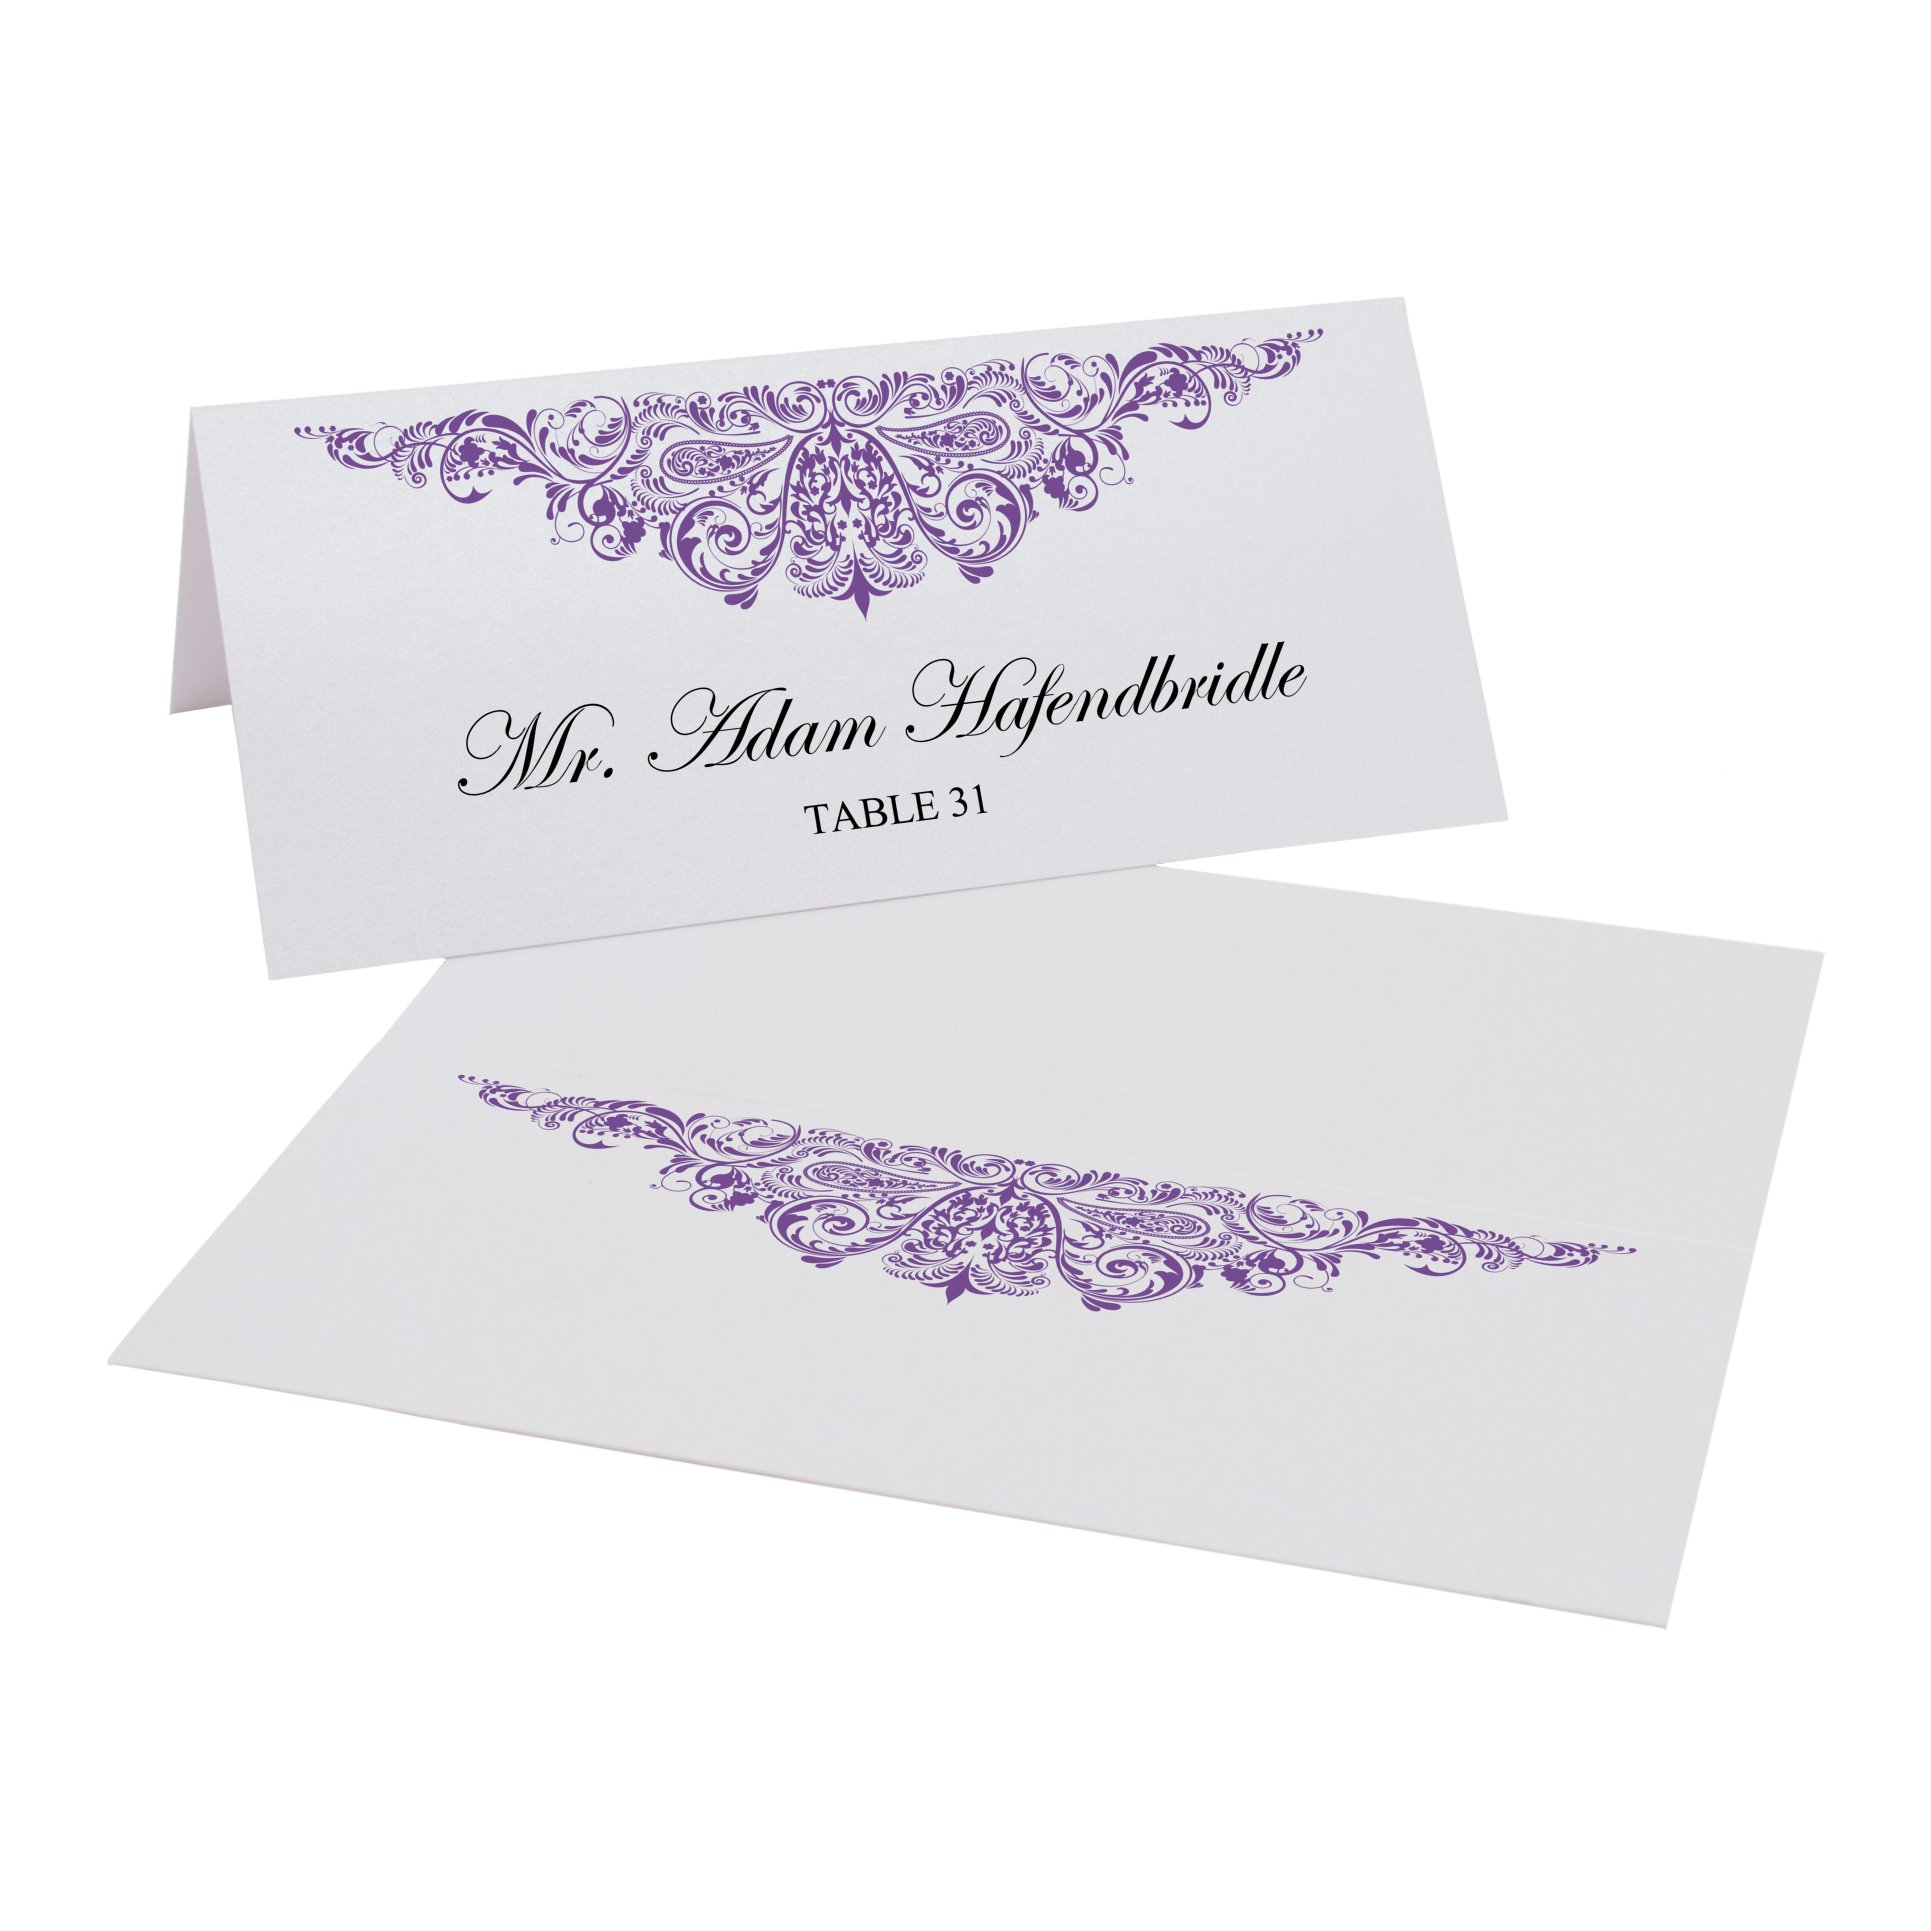 Documents and Designs Paisley Easy Print Place Cards, Purple, Set of 150 (25 Sheets)